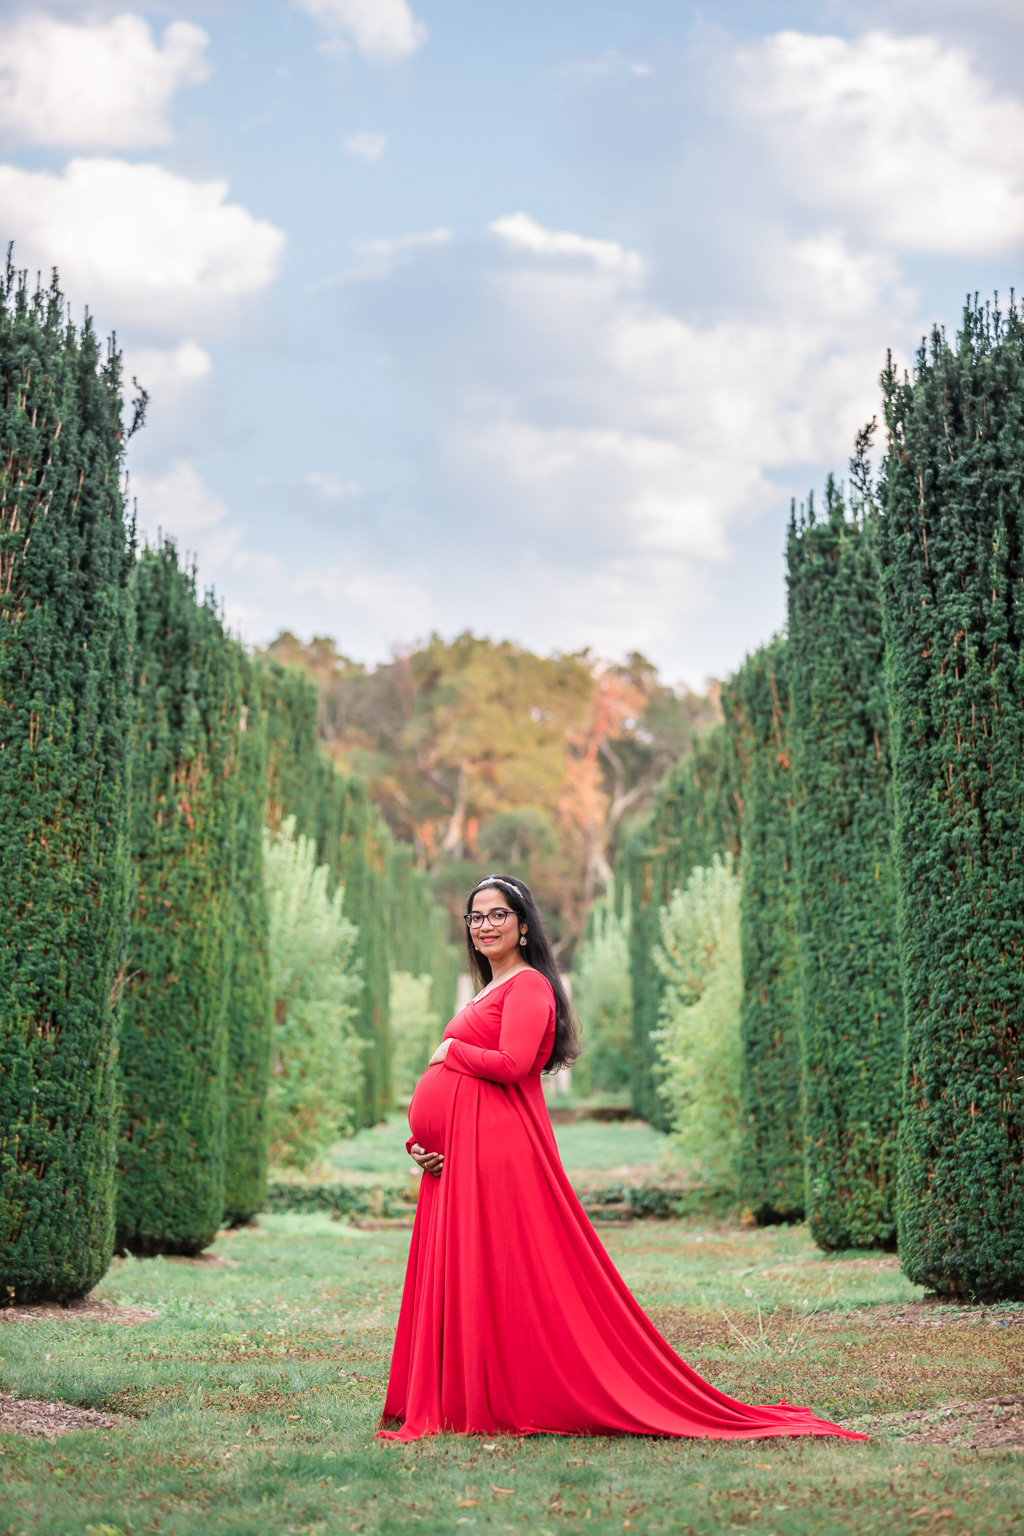 Filoli Gardens maternity photo shoot at the two rows of trees